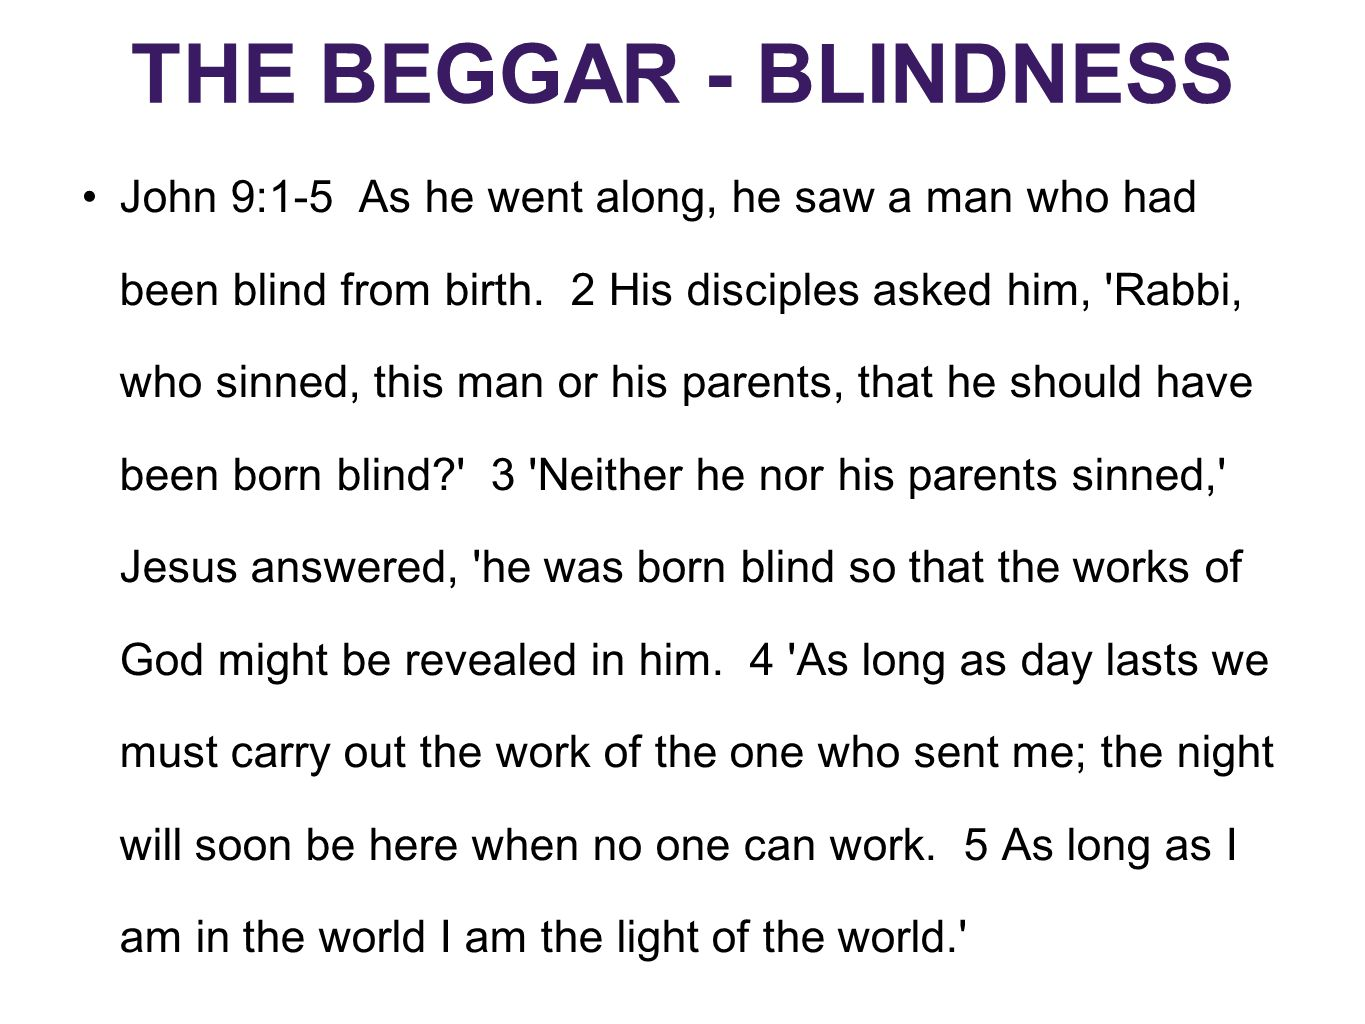 THE BEGGAR - BLINDNESS John 9:1-5 As he went along, he saw a man who had been blind from birth.